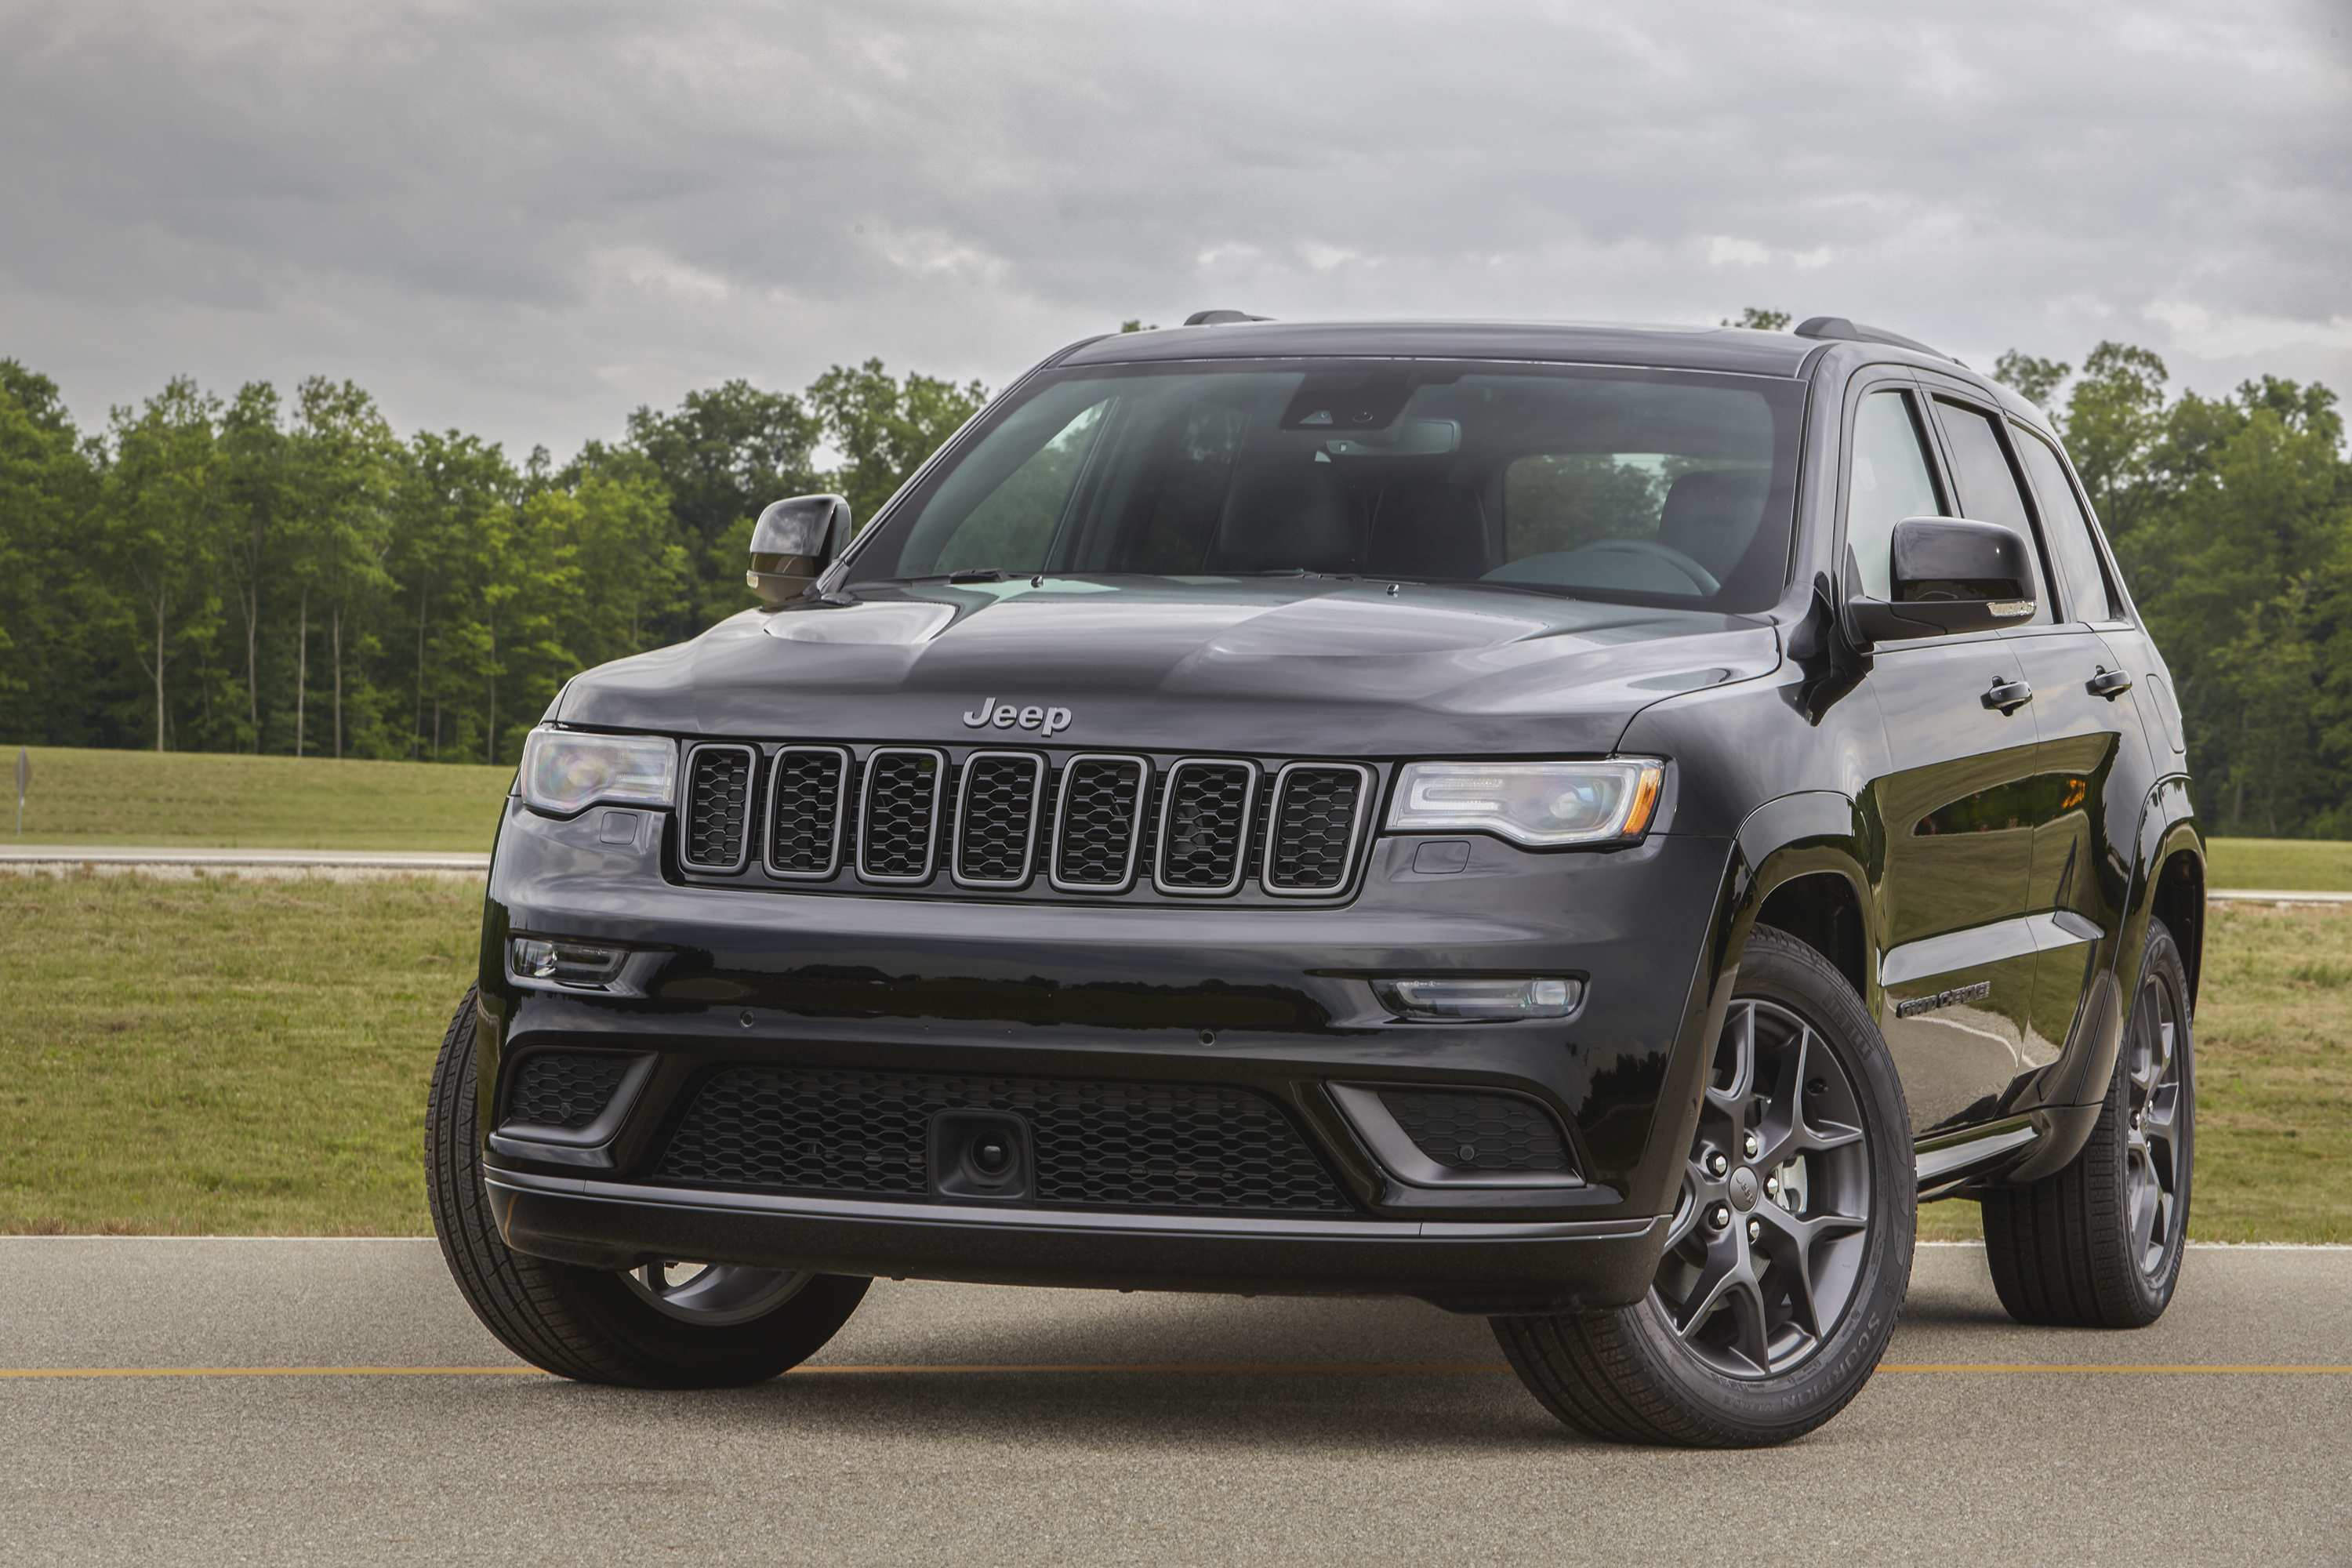 91 Concept of Best Jeep 2019 Orders Price And Release Date Spesification by Best Jeep 2019 Orders Price And Release Date